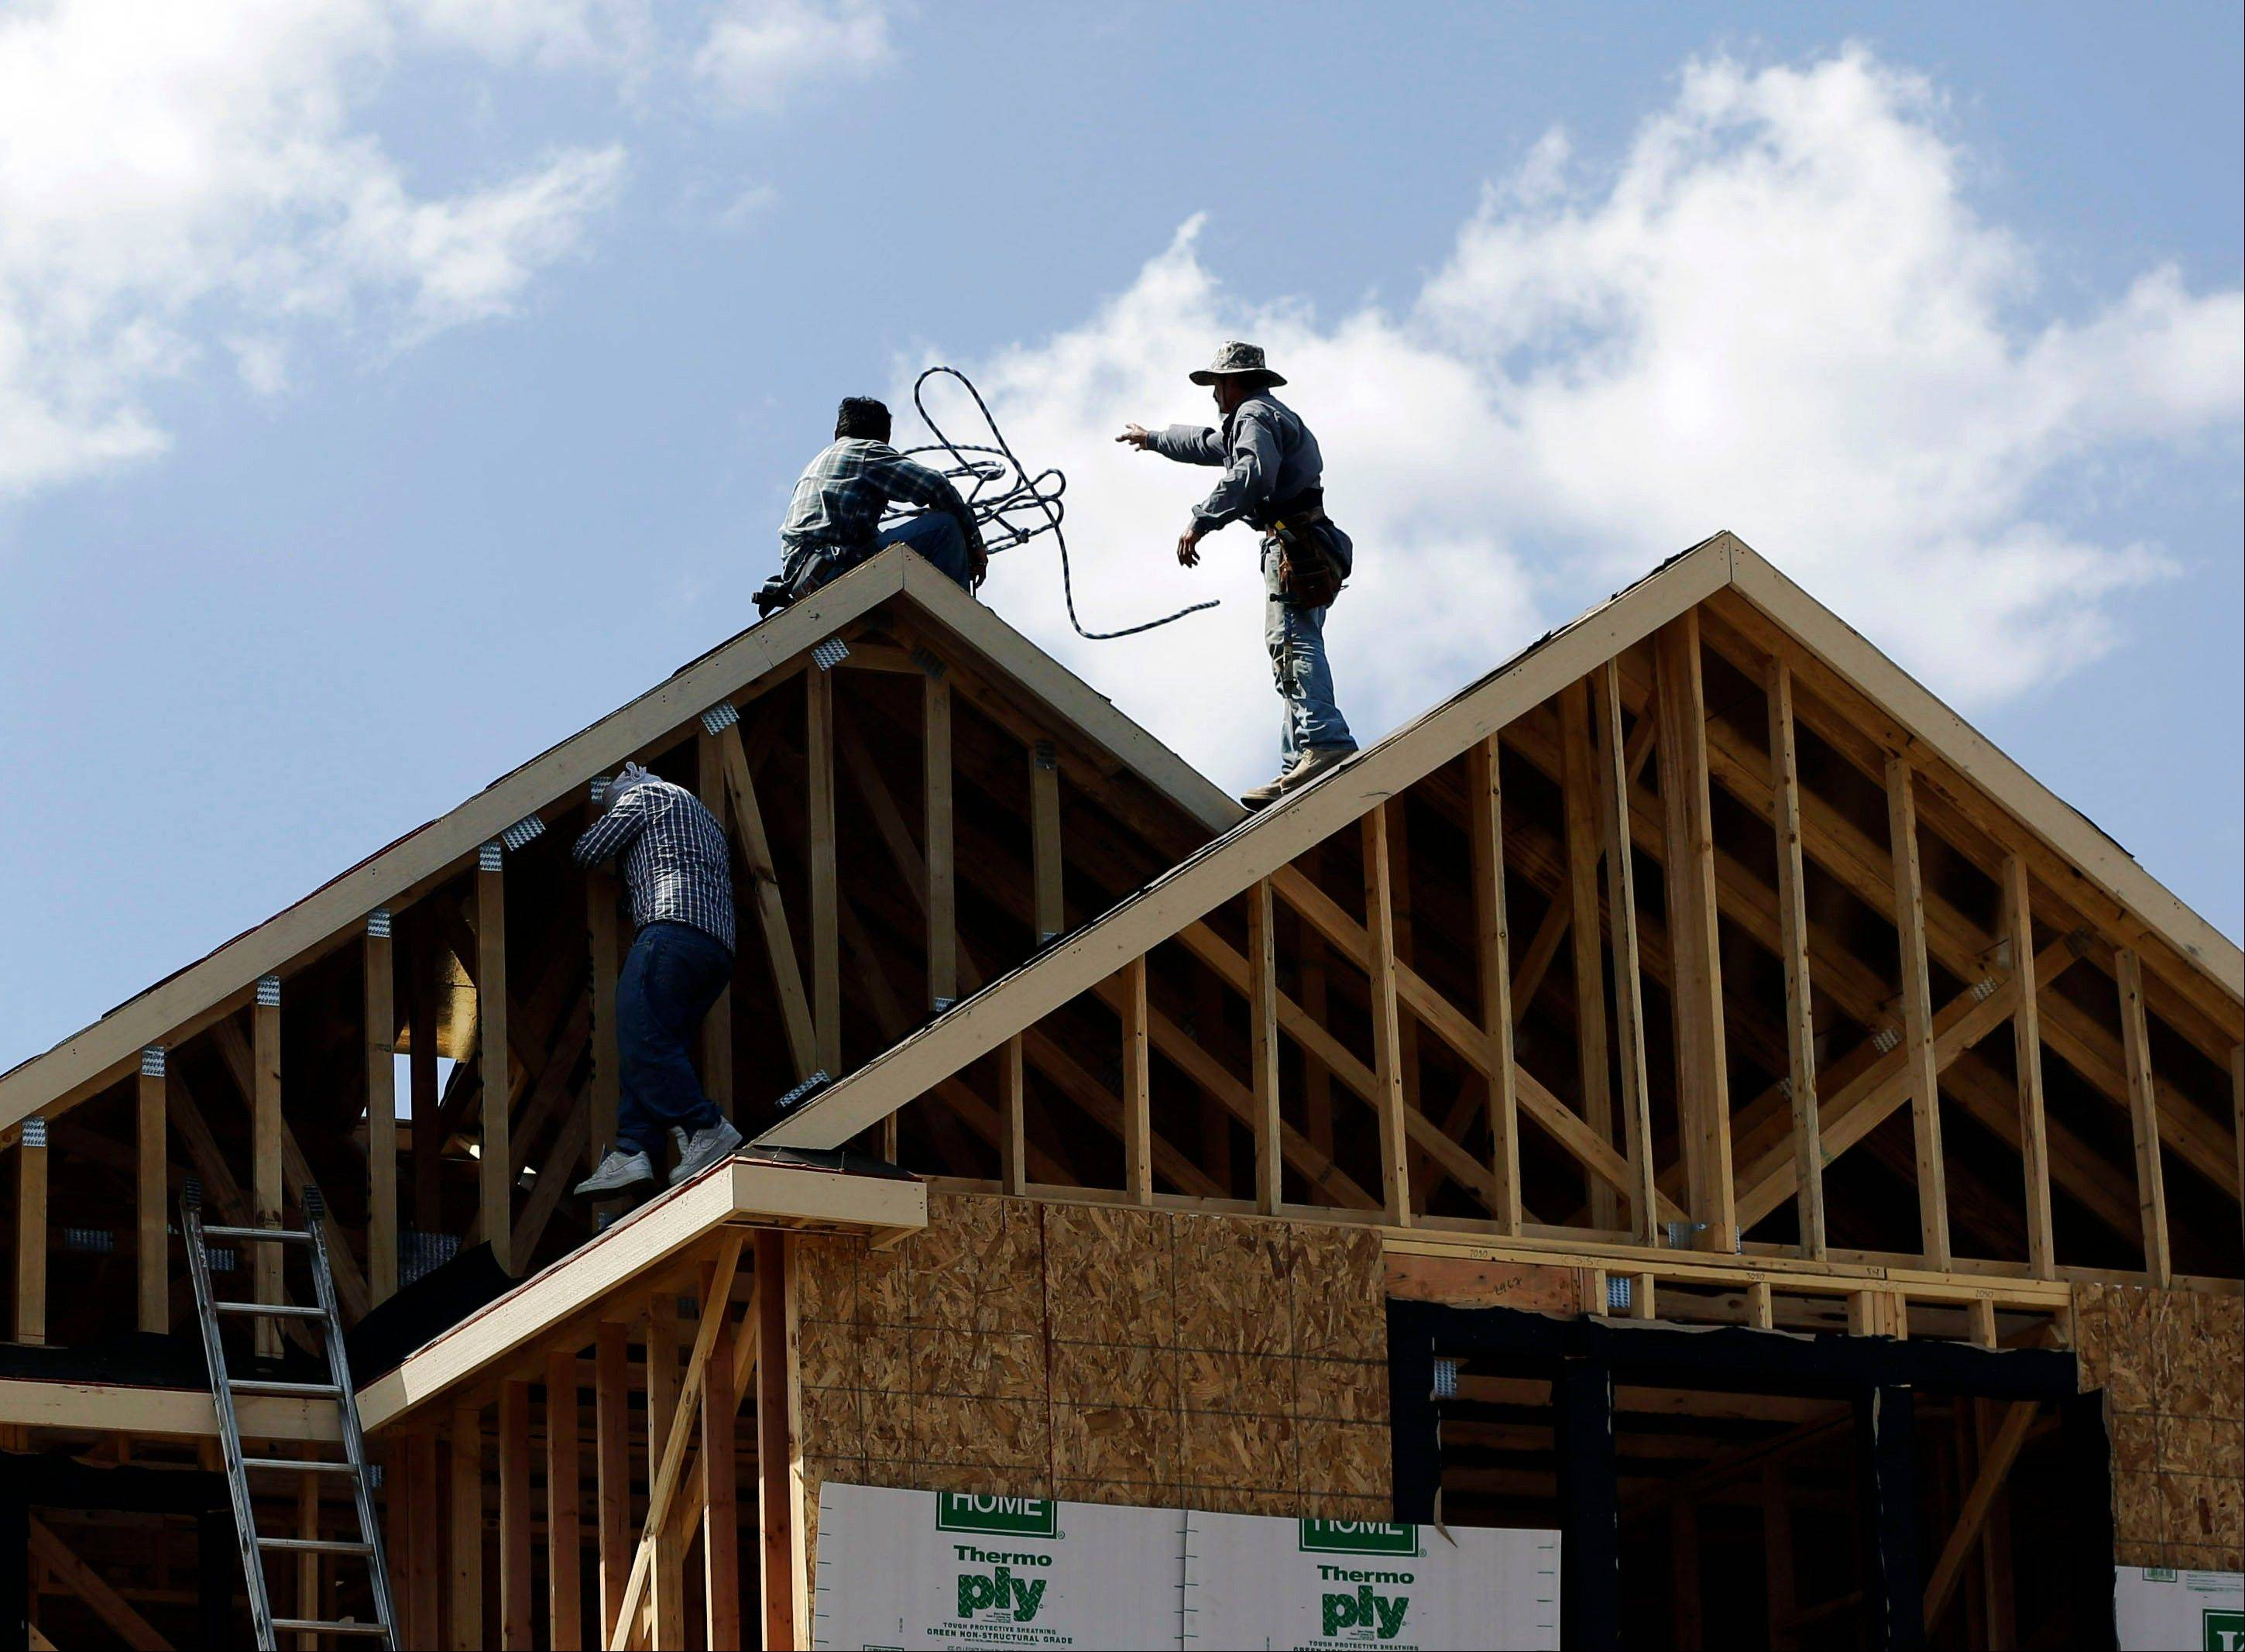 Confidence among U.S. homebuilders fell this month because of concerns that increased demand for new homes is exceeding supplies of ready-to-build land, building materials and workers.